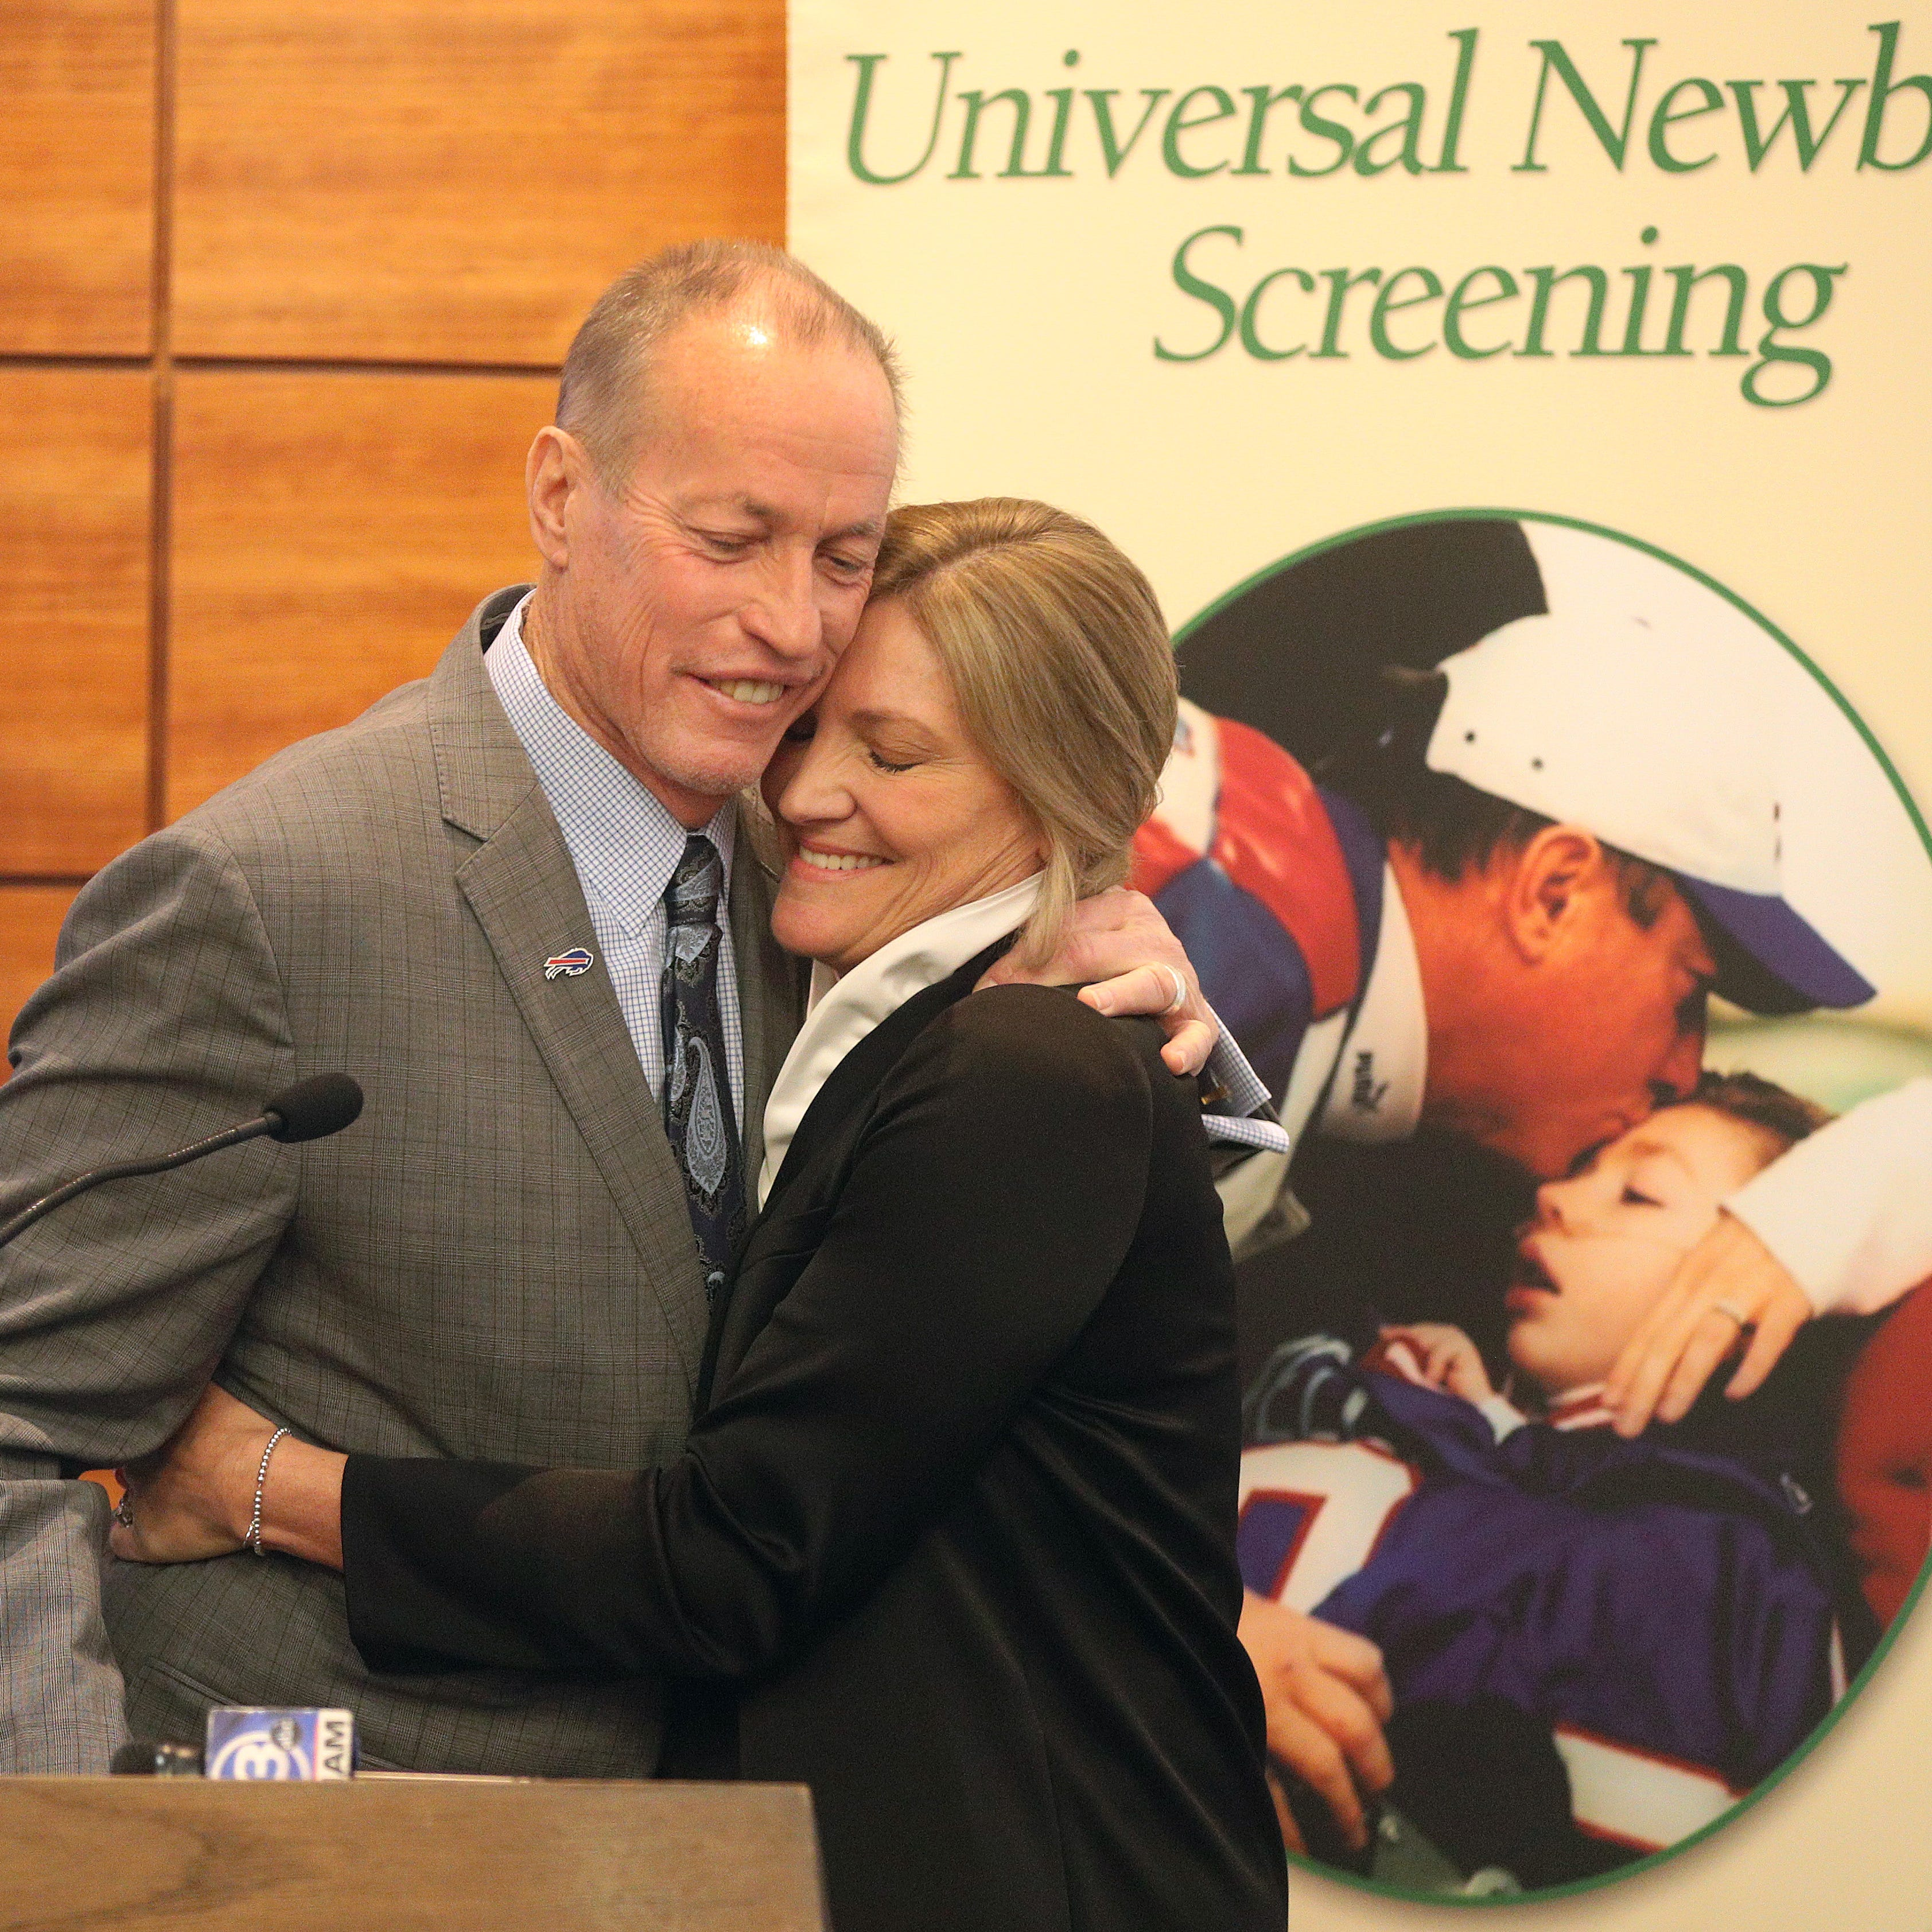 Jim and Jill Kelly team up with Golisano Children's Hospital